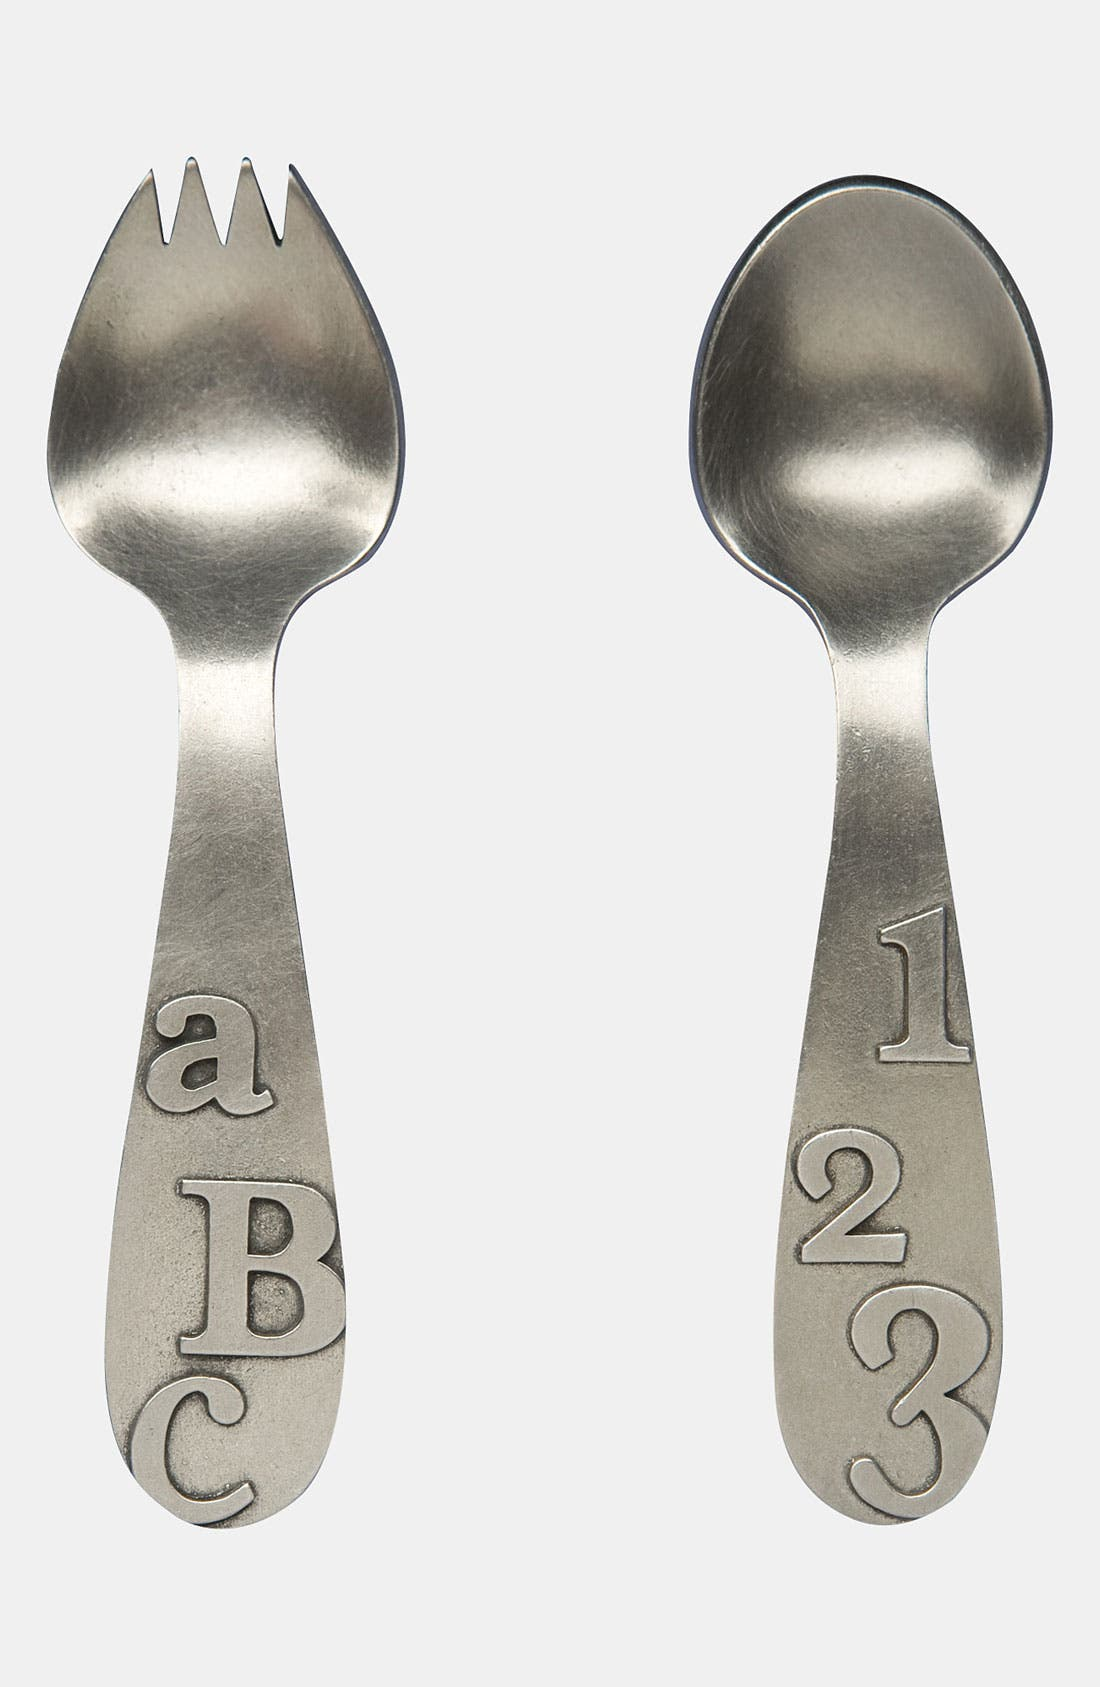 Alternate Image 1 Selected - Beehive Kitchenware 'ABC/123' Keepsake Spoon & Fork Set